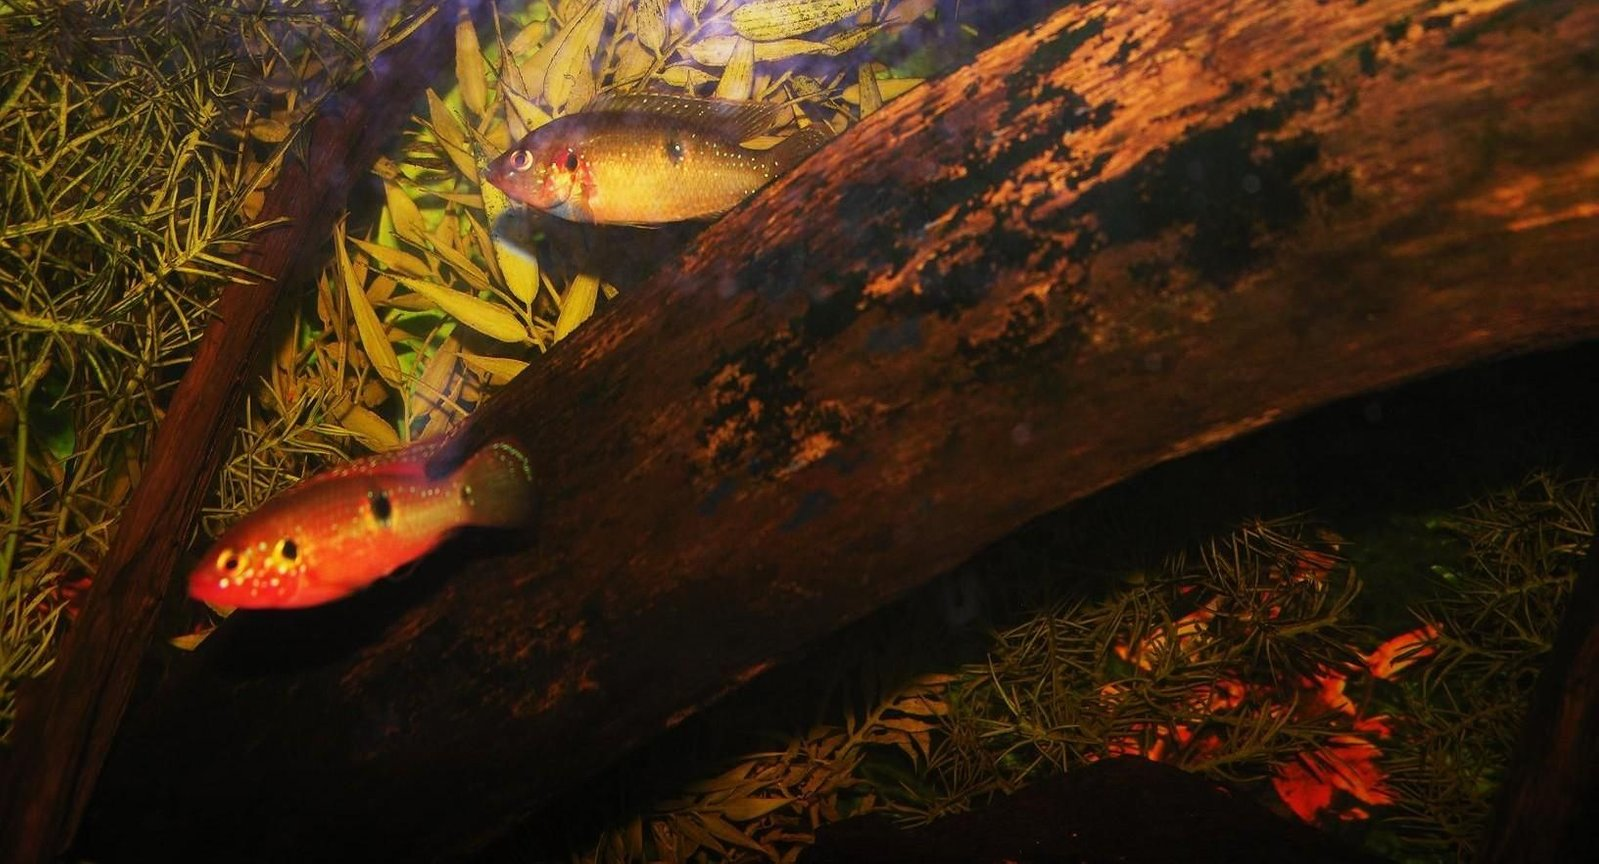 freshwater fish - hemichromis bimaculatus - jewel cichlid stocking in 120 gallons tank - jewels